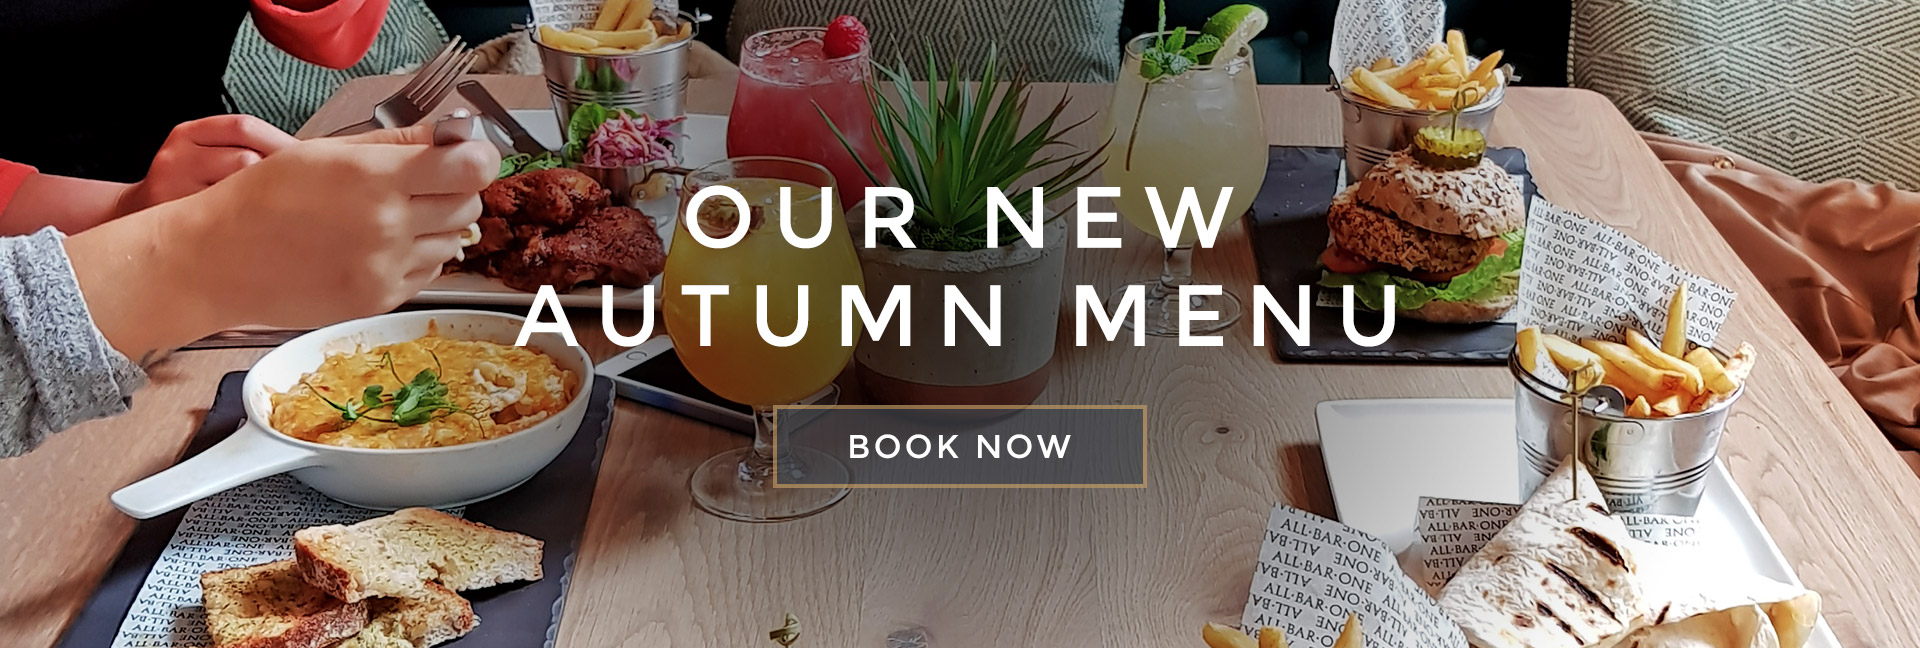 Our new Autumn menu at All Bar One Aberdeen - Book now